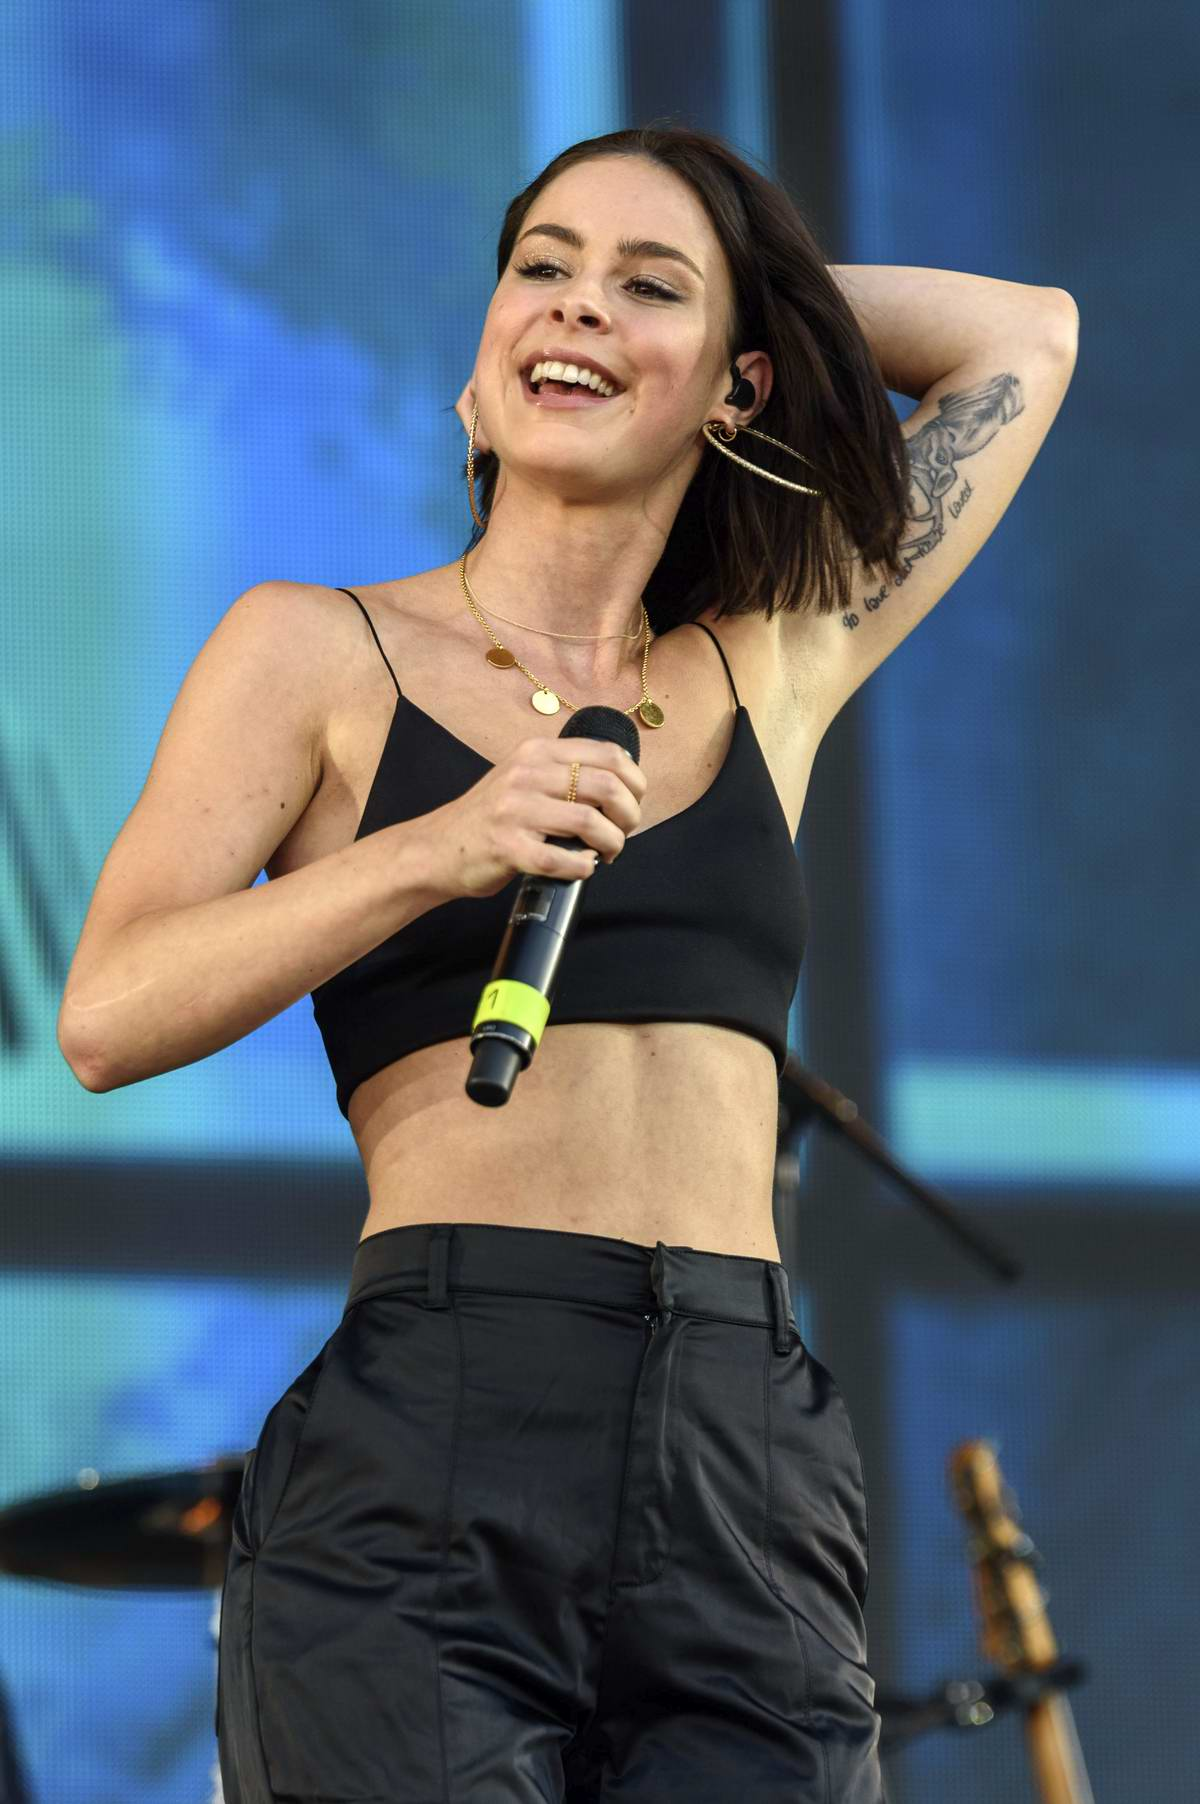 Lena Meyer-Landrut performs onstage at PxP (Peace by Peace) Festival in Berlin, Germany